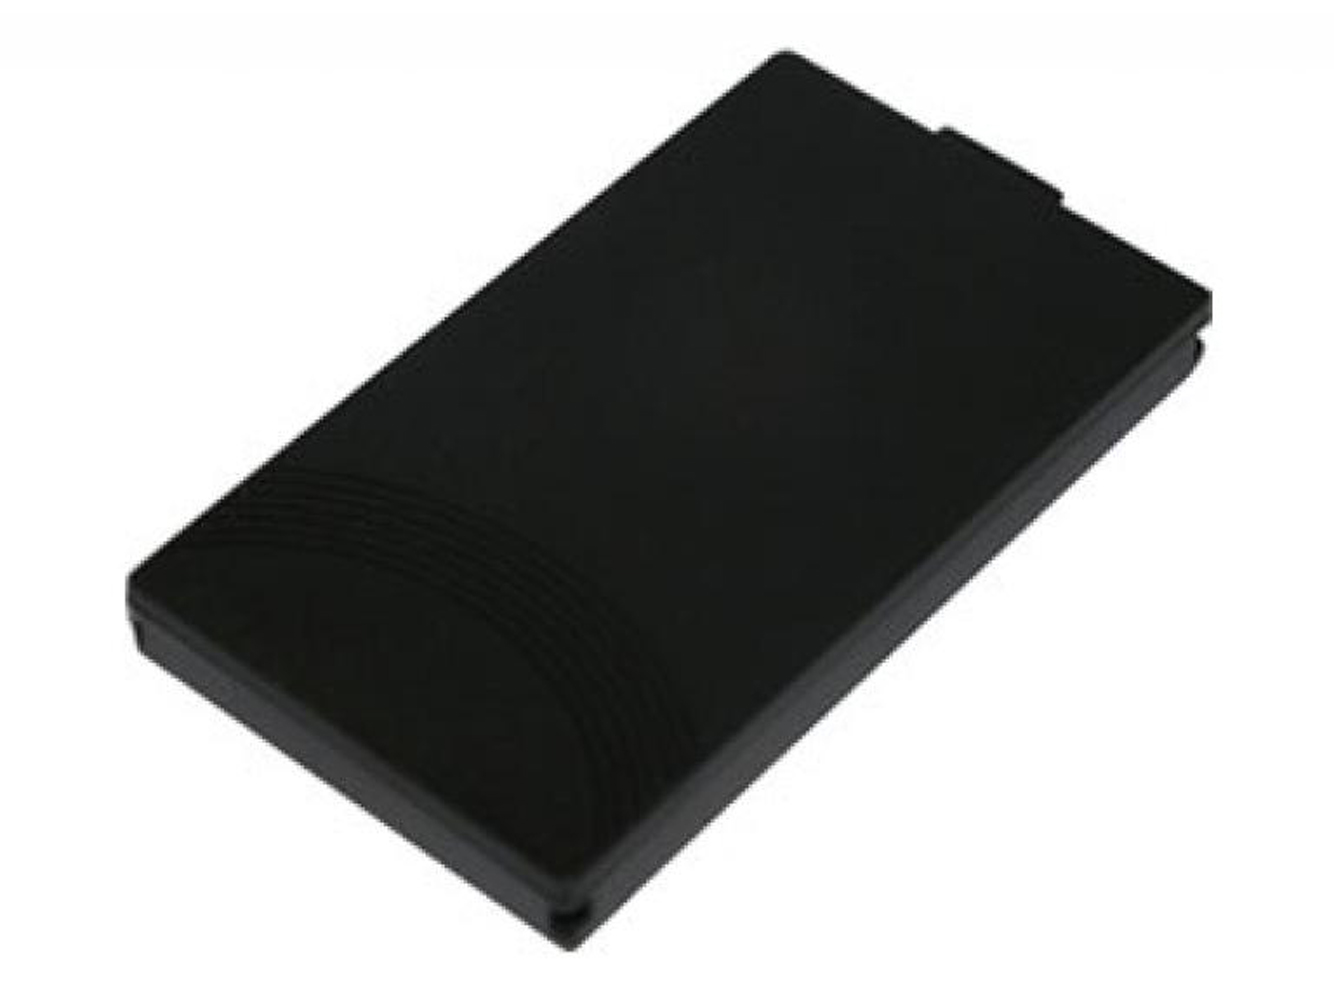 Replacement for SAMSUNG VP-DX10 Camcorder Battery